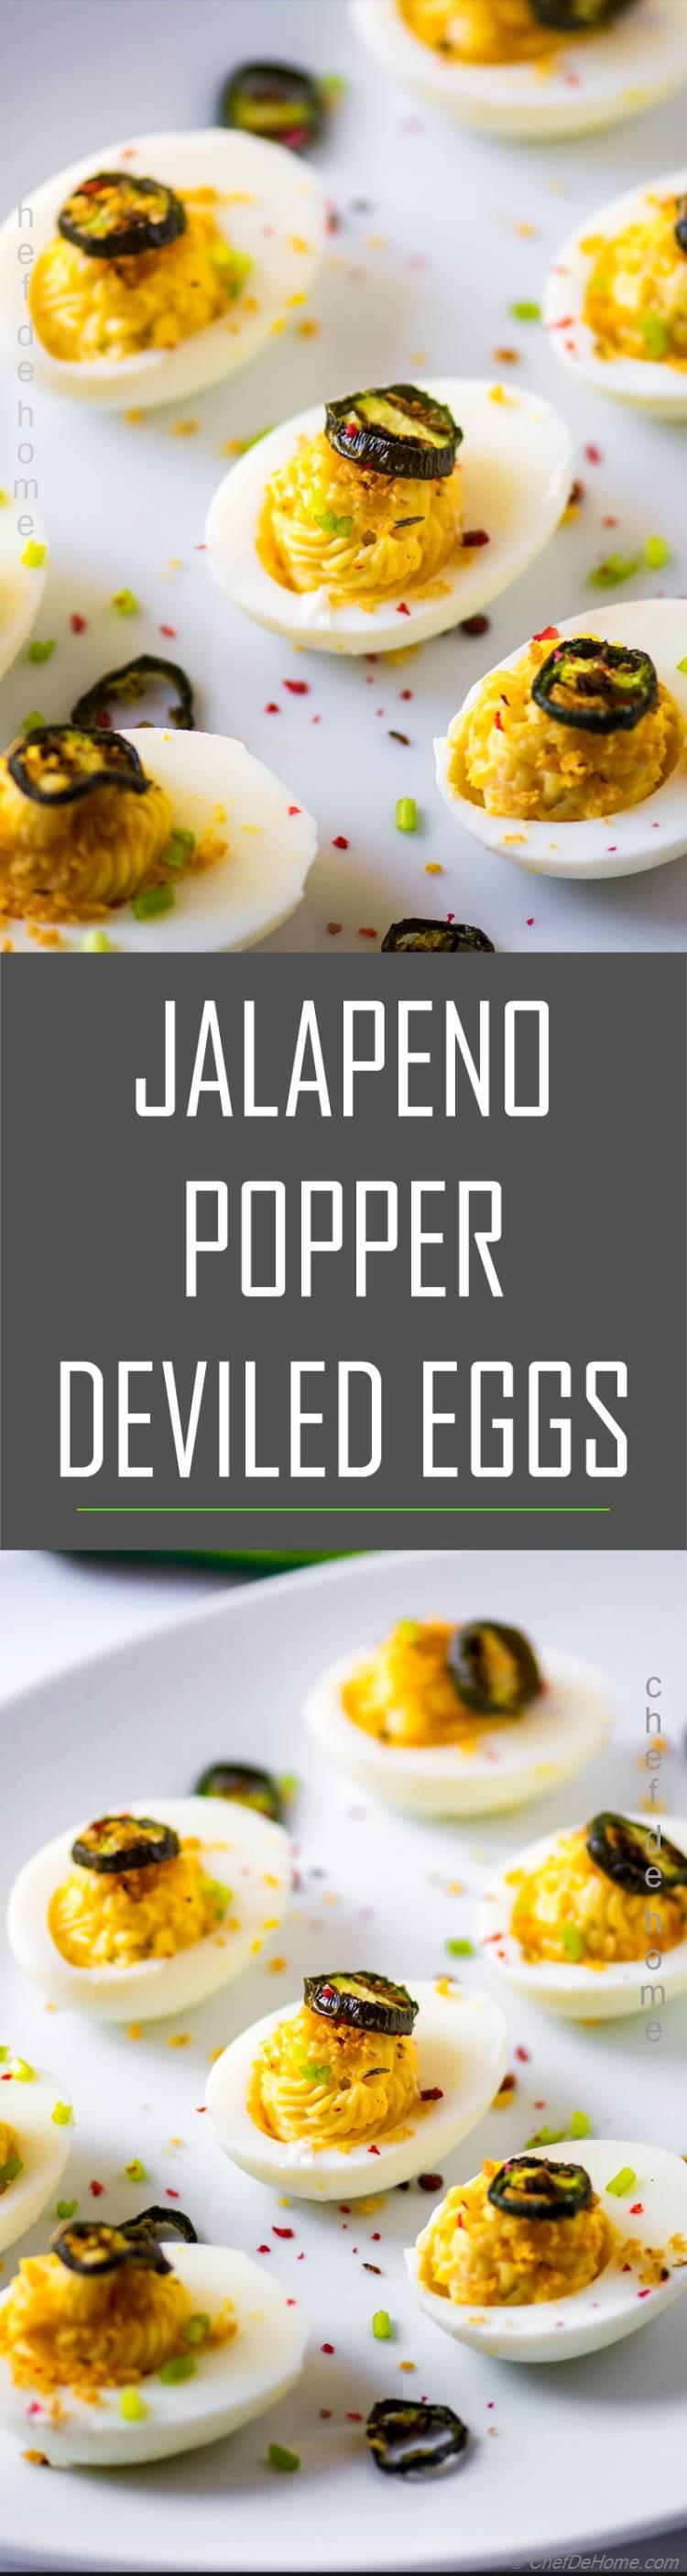 Deviled eggs with roasted jalapeno and cream cheese for jalapeno popper deviled eggs | chefdehome.com